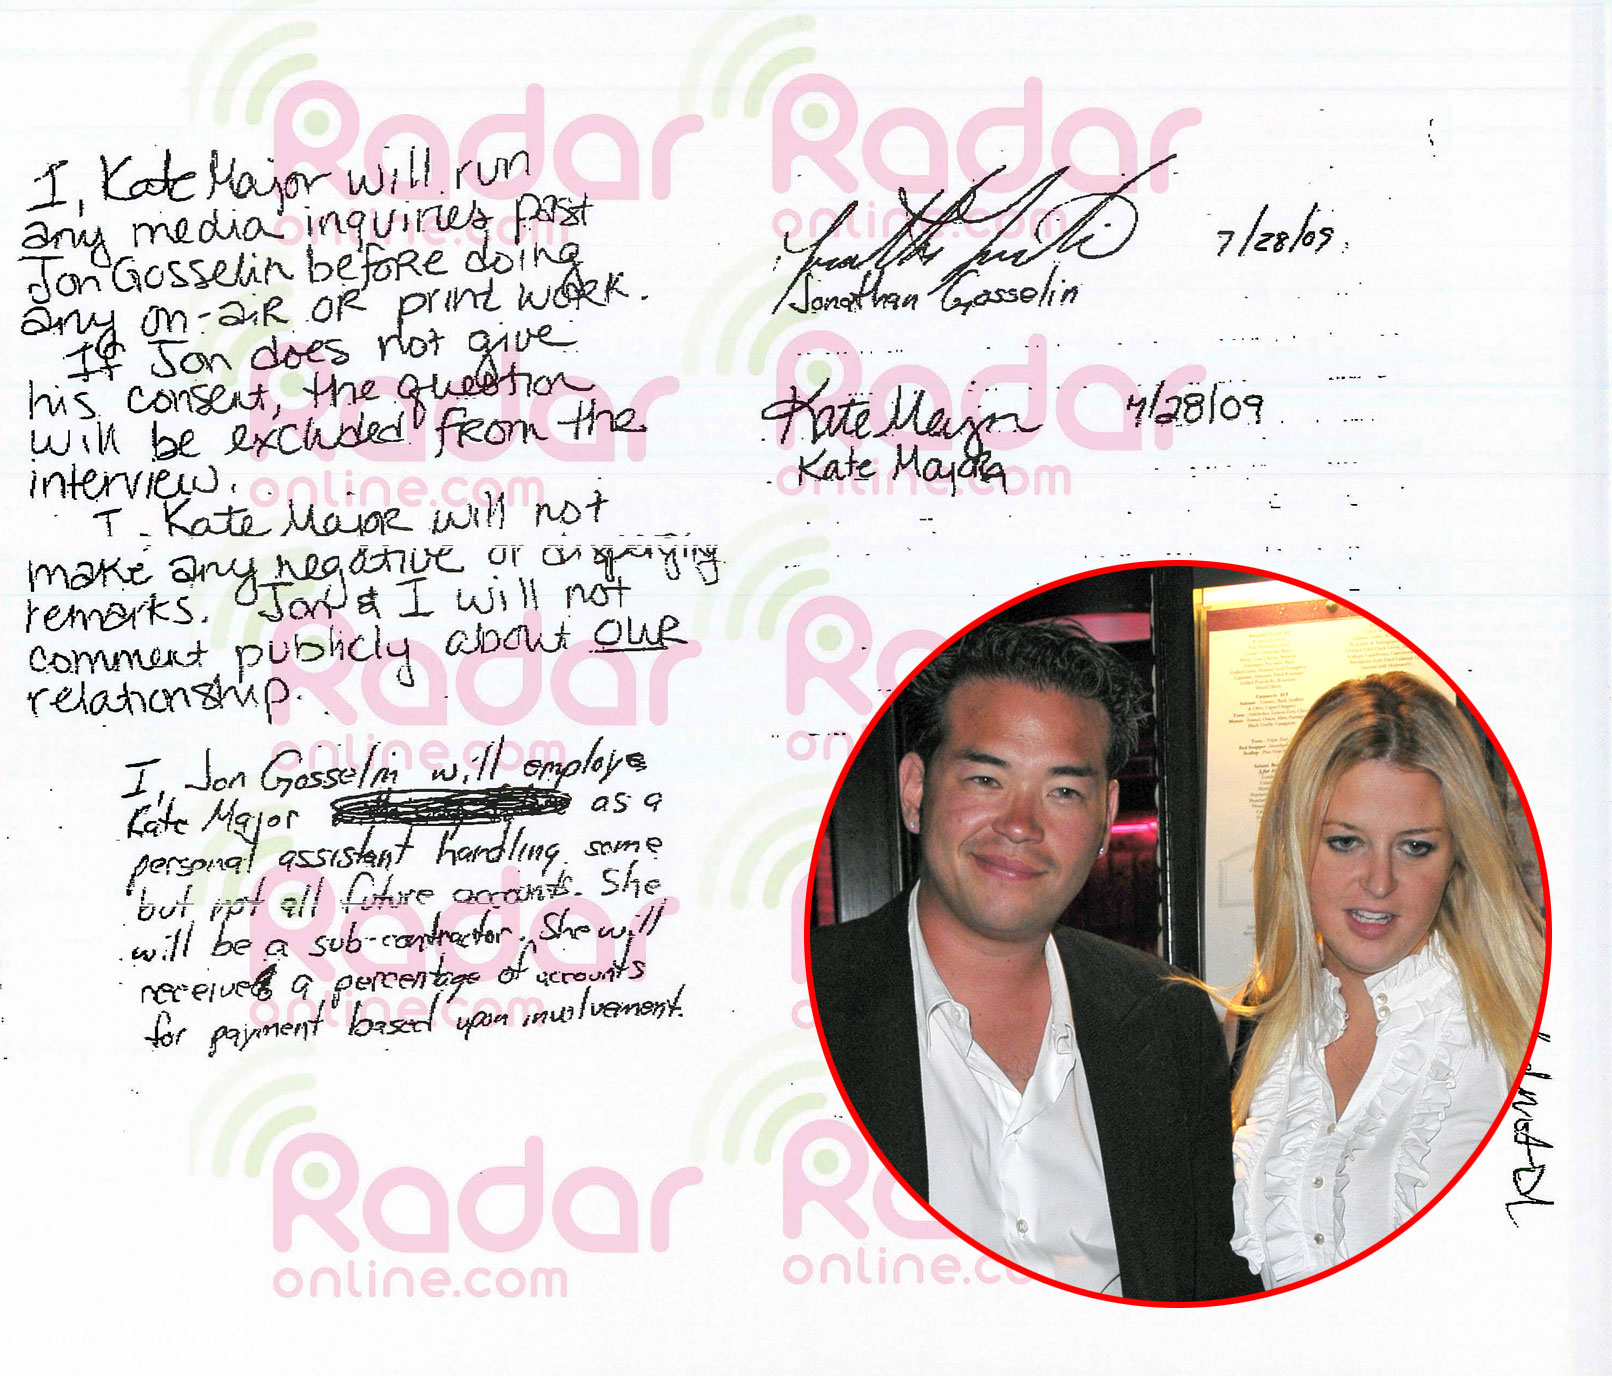 Jon Gosselin Hired Kate Major as His Assistant